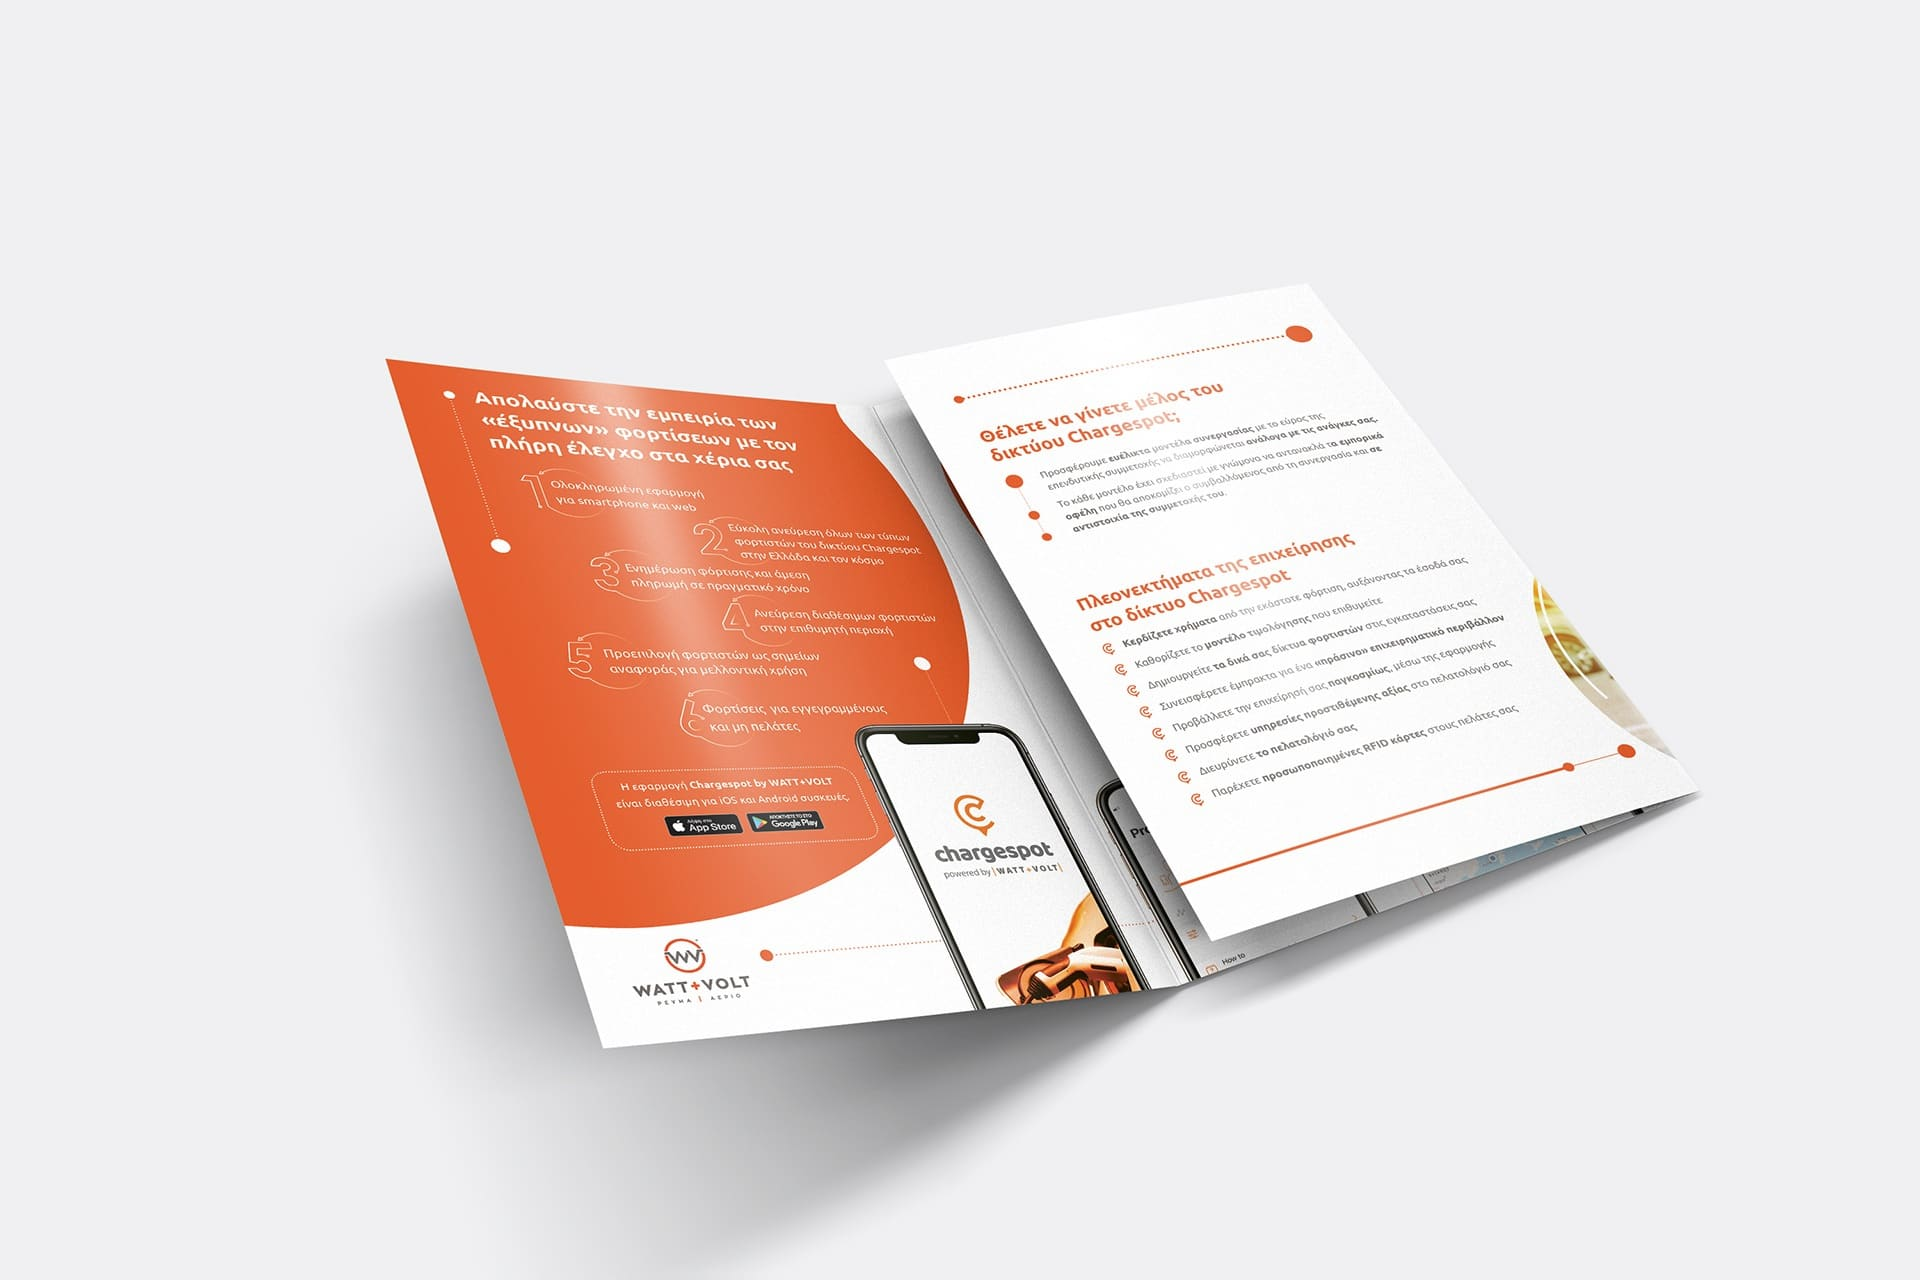 A4 trifold brochure b2b 4 Chargespot